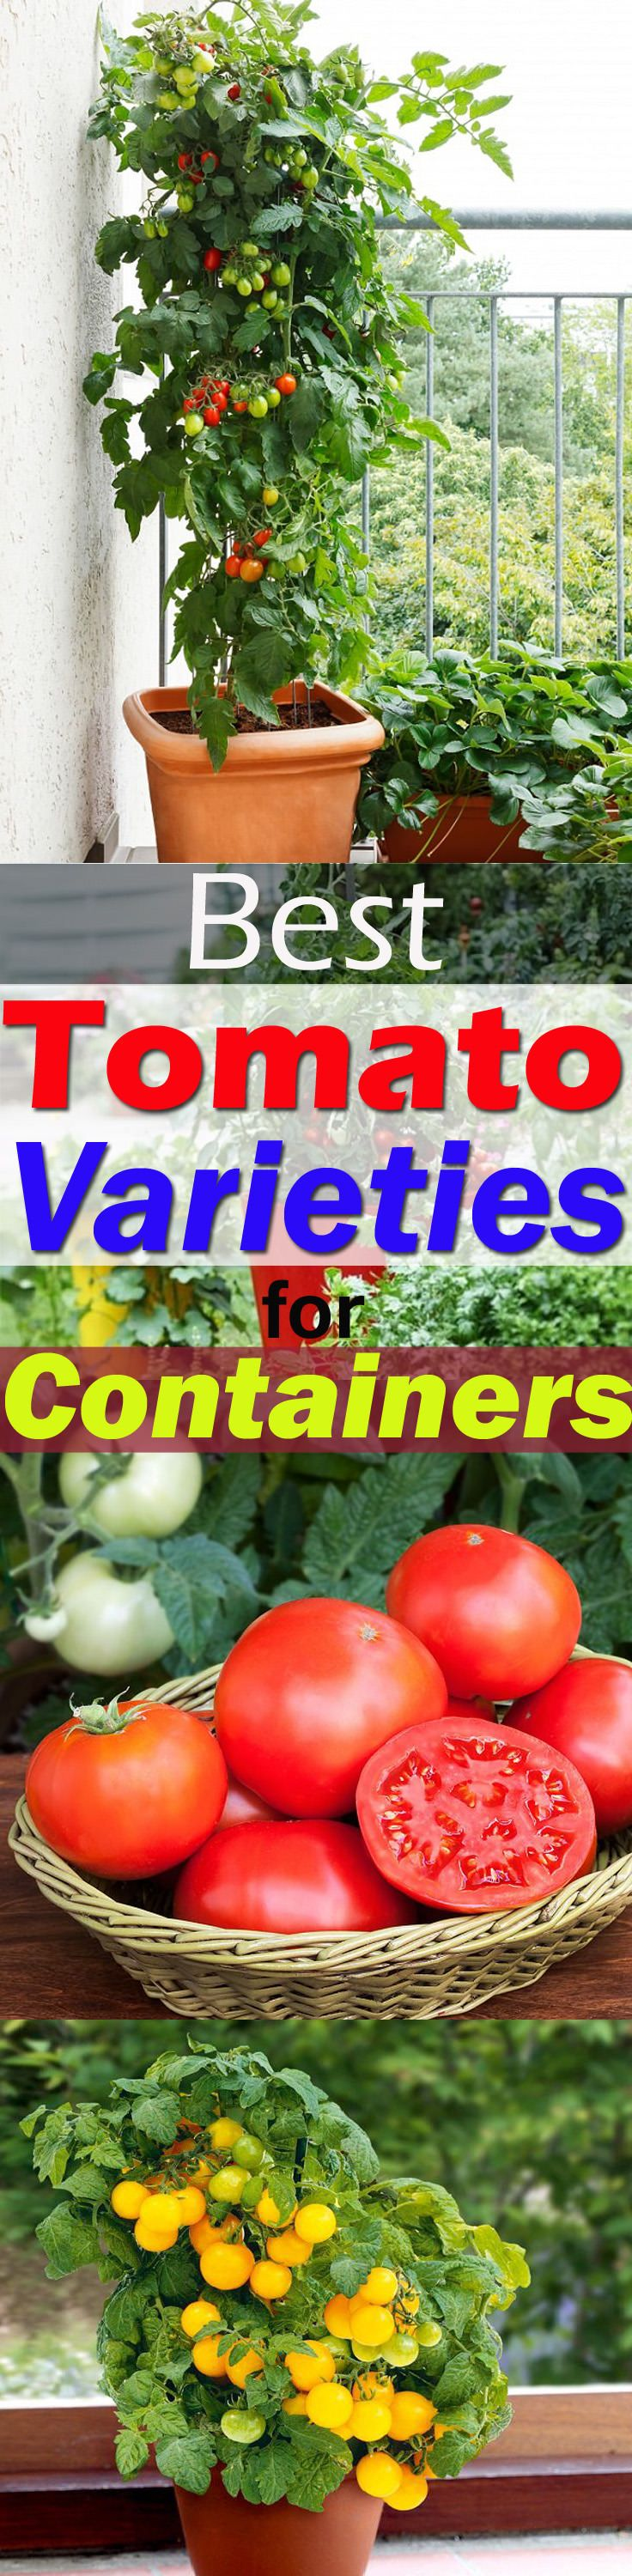 Best Tomato Varieties For Containers Tomato Garden 640 x 480